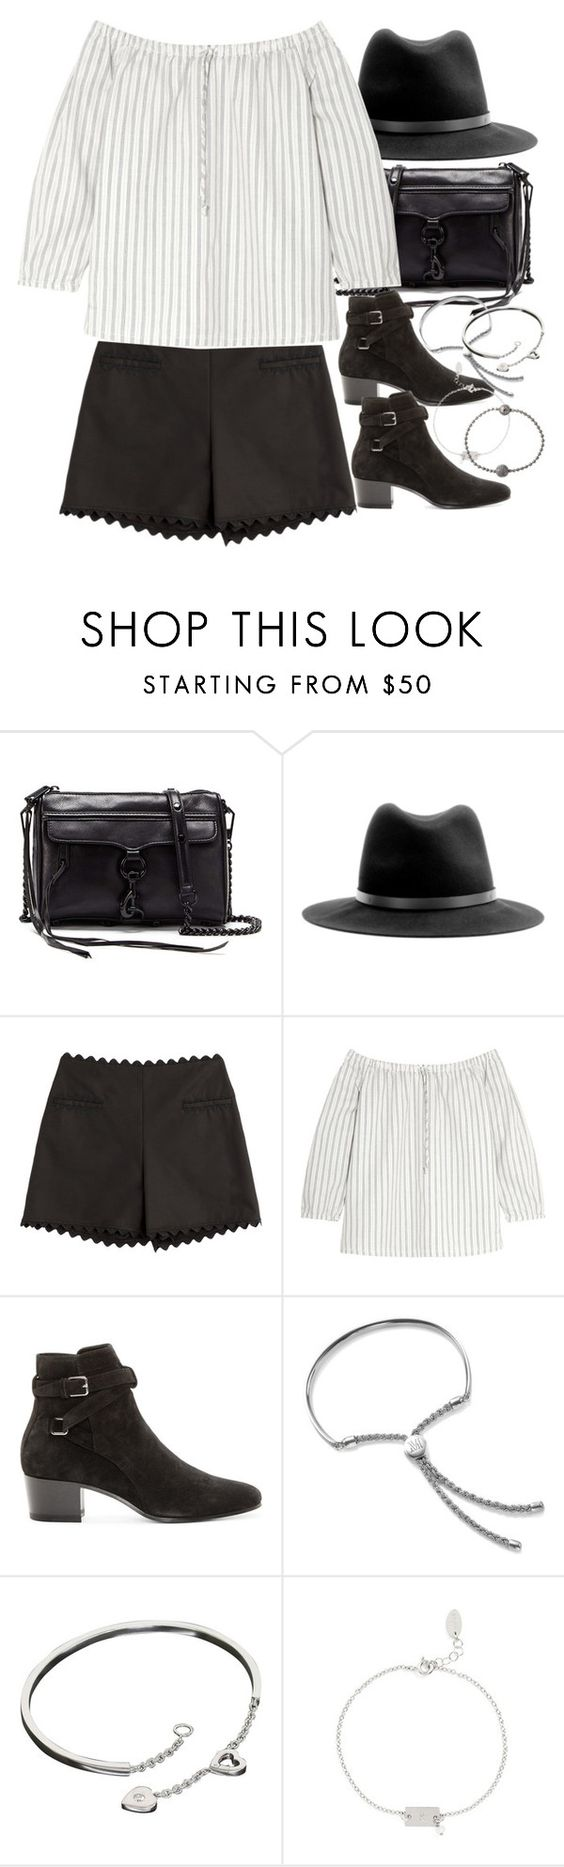 """Untitled #8985"" by nikka-phillips ❤ liked on Polyvore featuring Rebecca Minkoff, rag & bone, Moschino Cheap & Chic, Madewell, Yves Saint Laurent, Monica Vinader, Cartier, Nashelle and Shamballa Jewels"